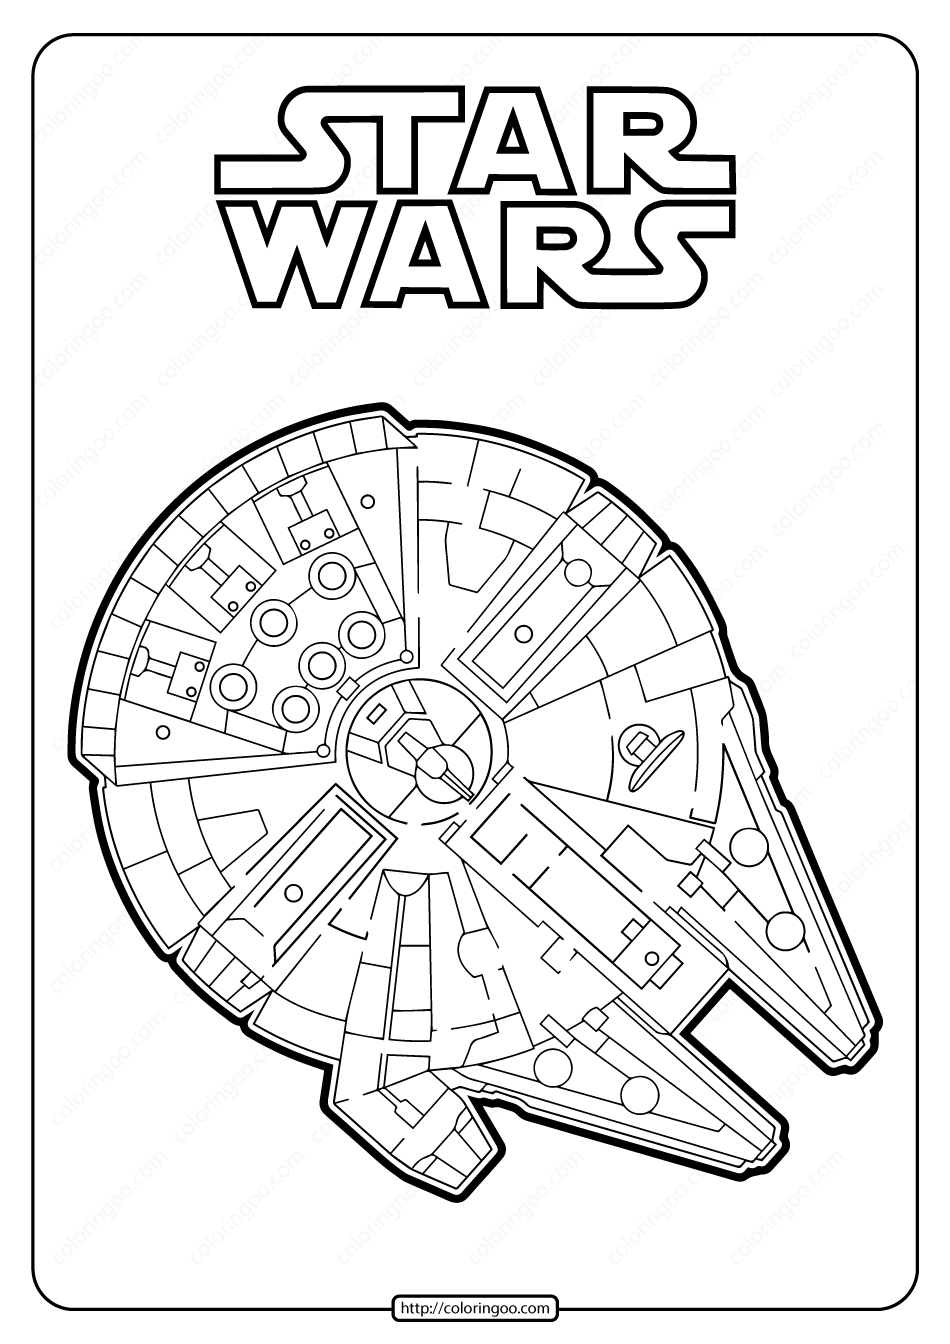 Star Wars Millenium Falcon Coloring Pages Star Wars Coloring Sheet Star Wars Painting Cute Coloring Pages